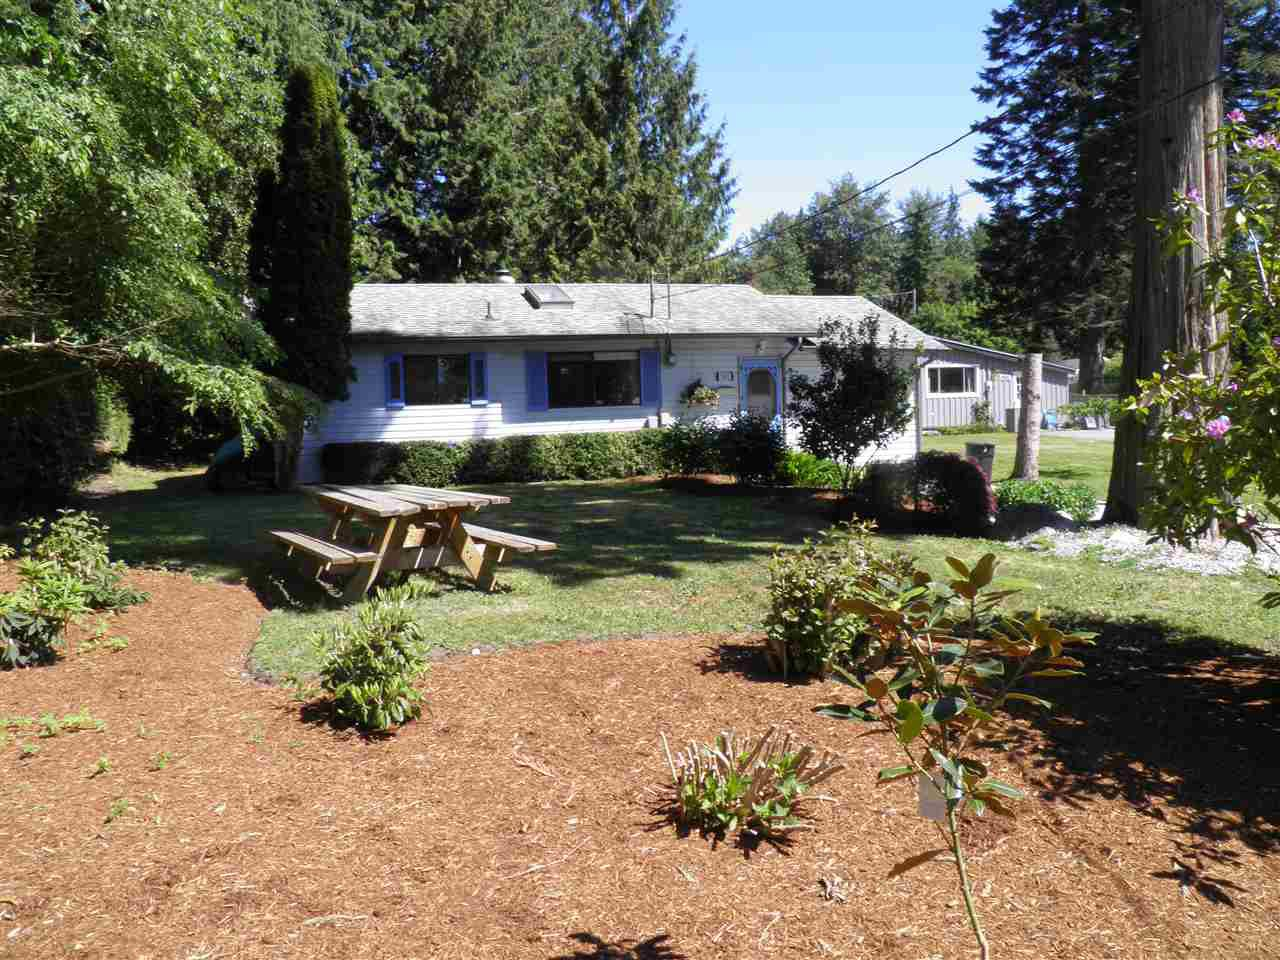 Main Photo: 1002 FAIRVIEW ROAD in Gibsons: Gibsons & Area House for sale (Sunshine Coast)  : MLS®# R2068848